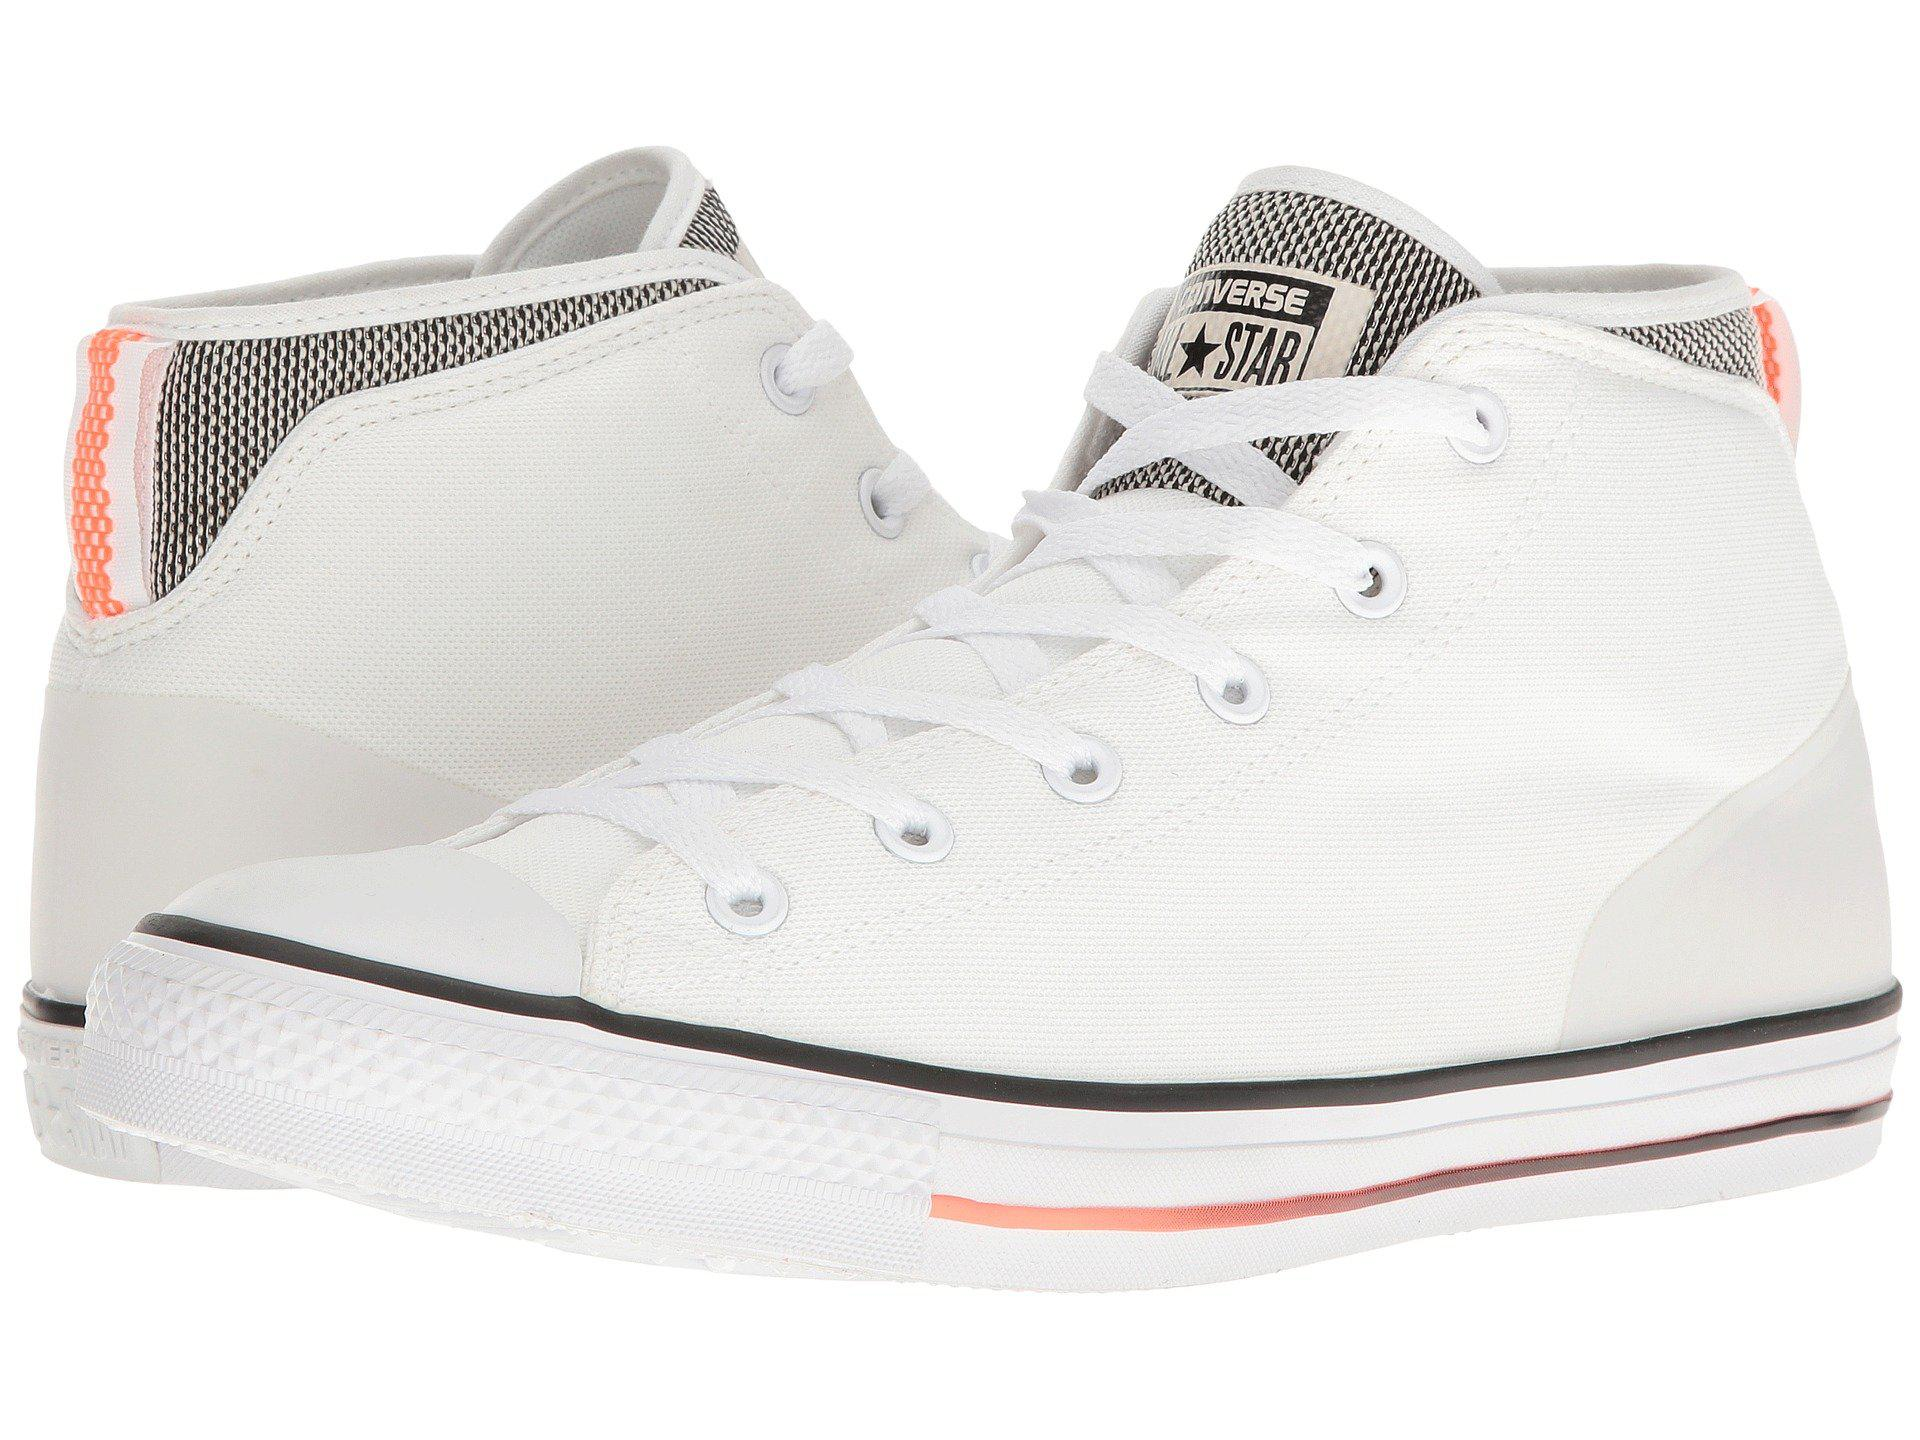 27b779a8199 Lyst - Converse Chuck Taylor® All Star® Syde Street Summer Mid in ...